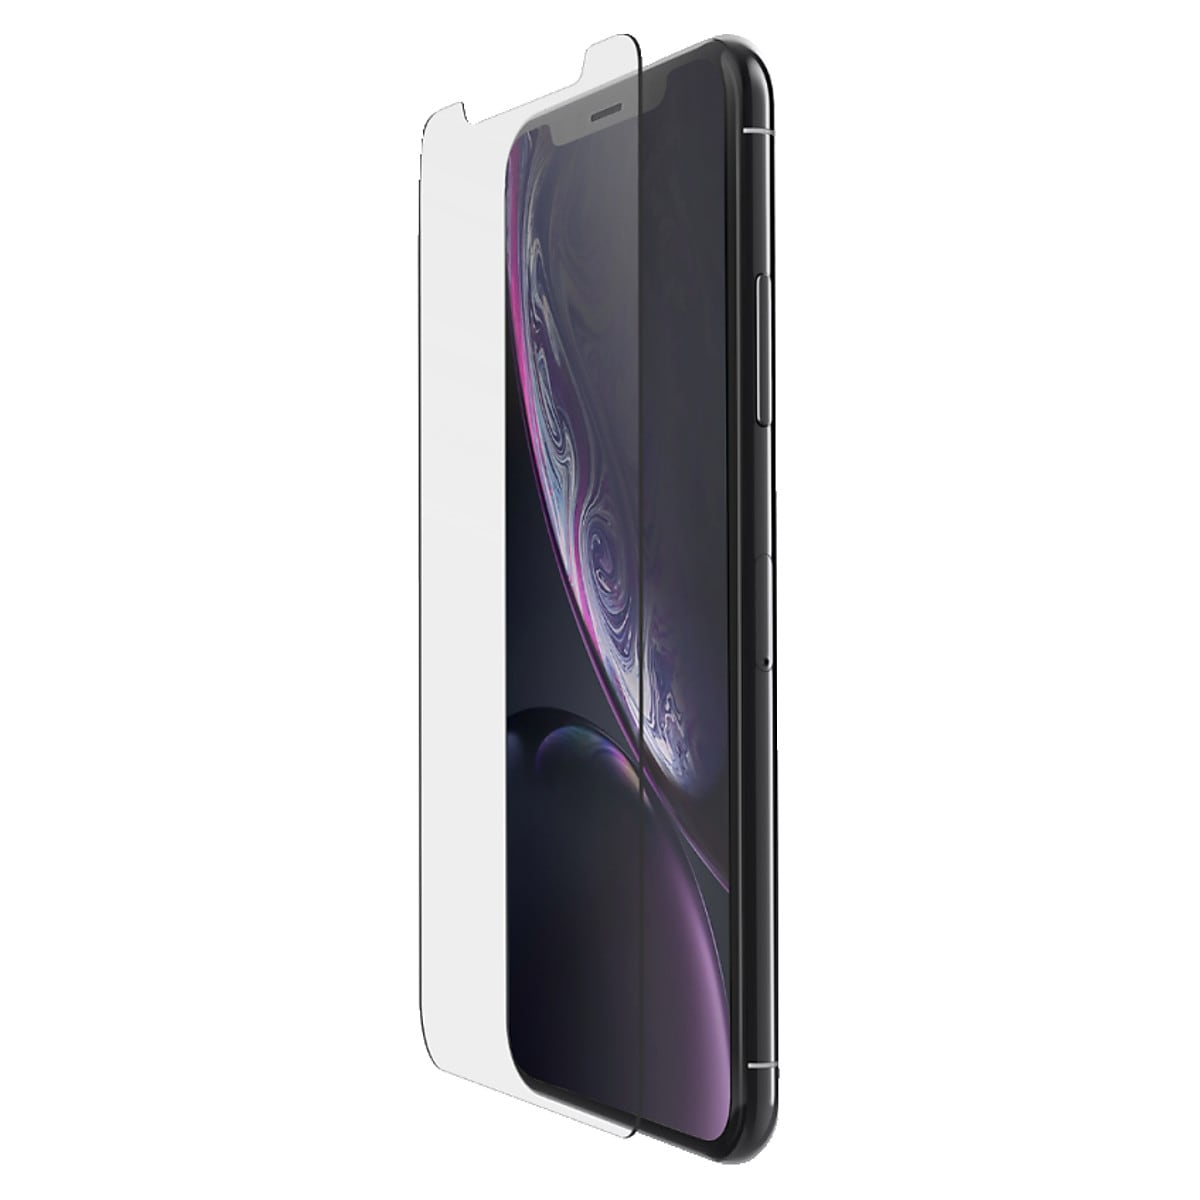 Skärmskydd för iPhone XR, Belkin ScreenForce TemperedGlass